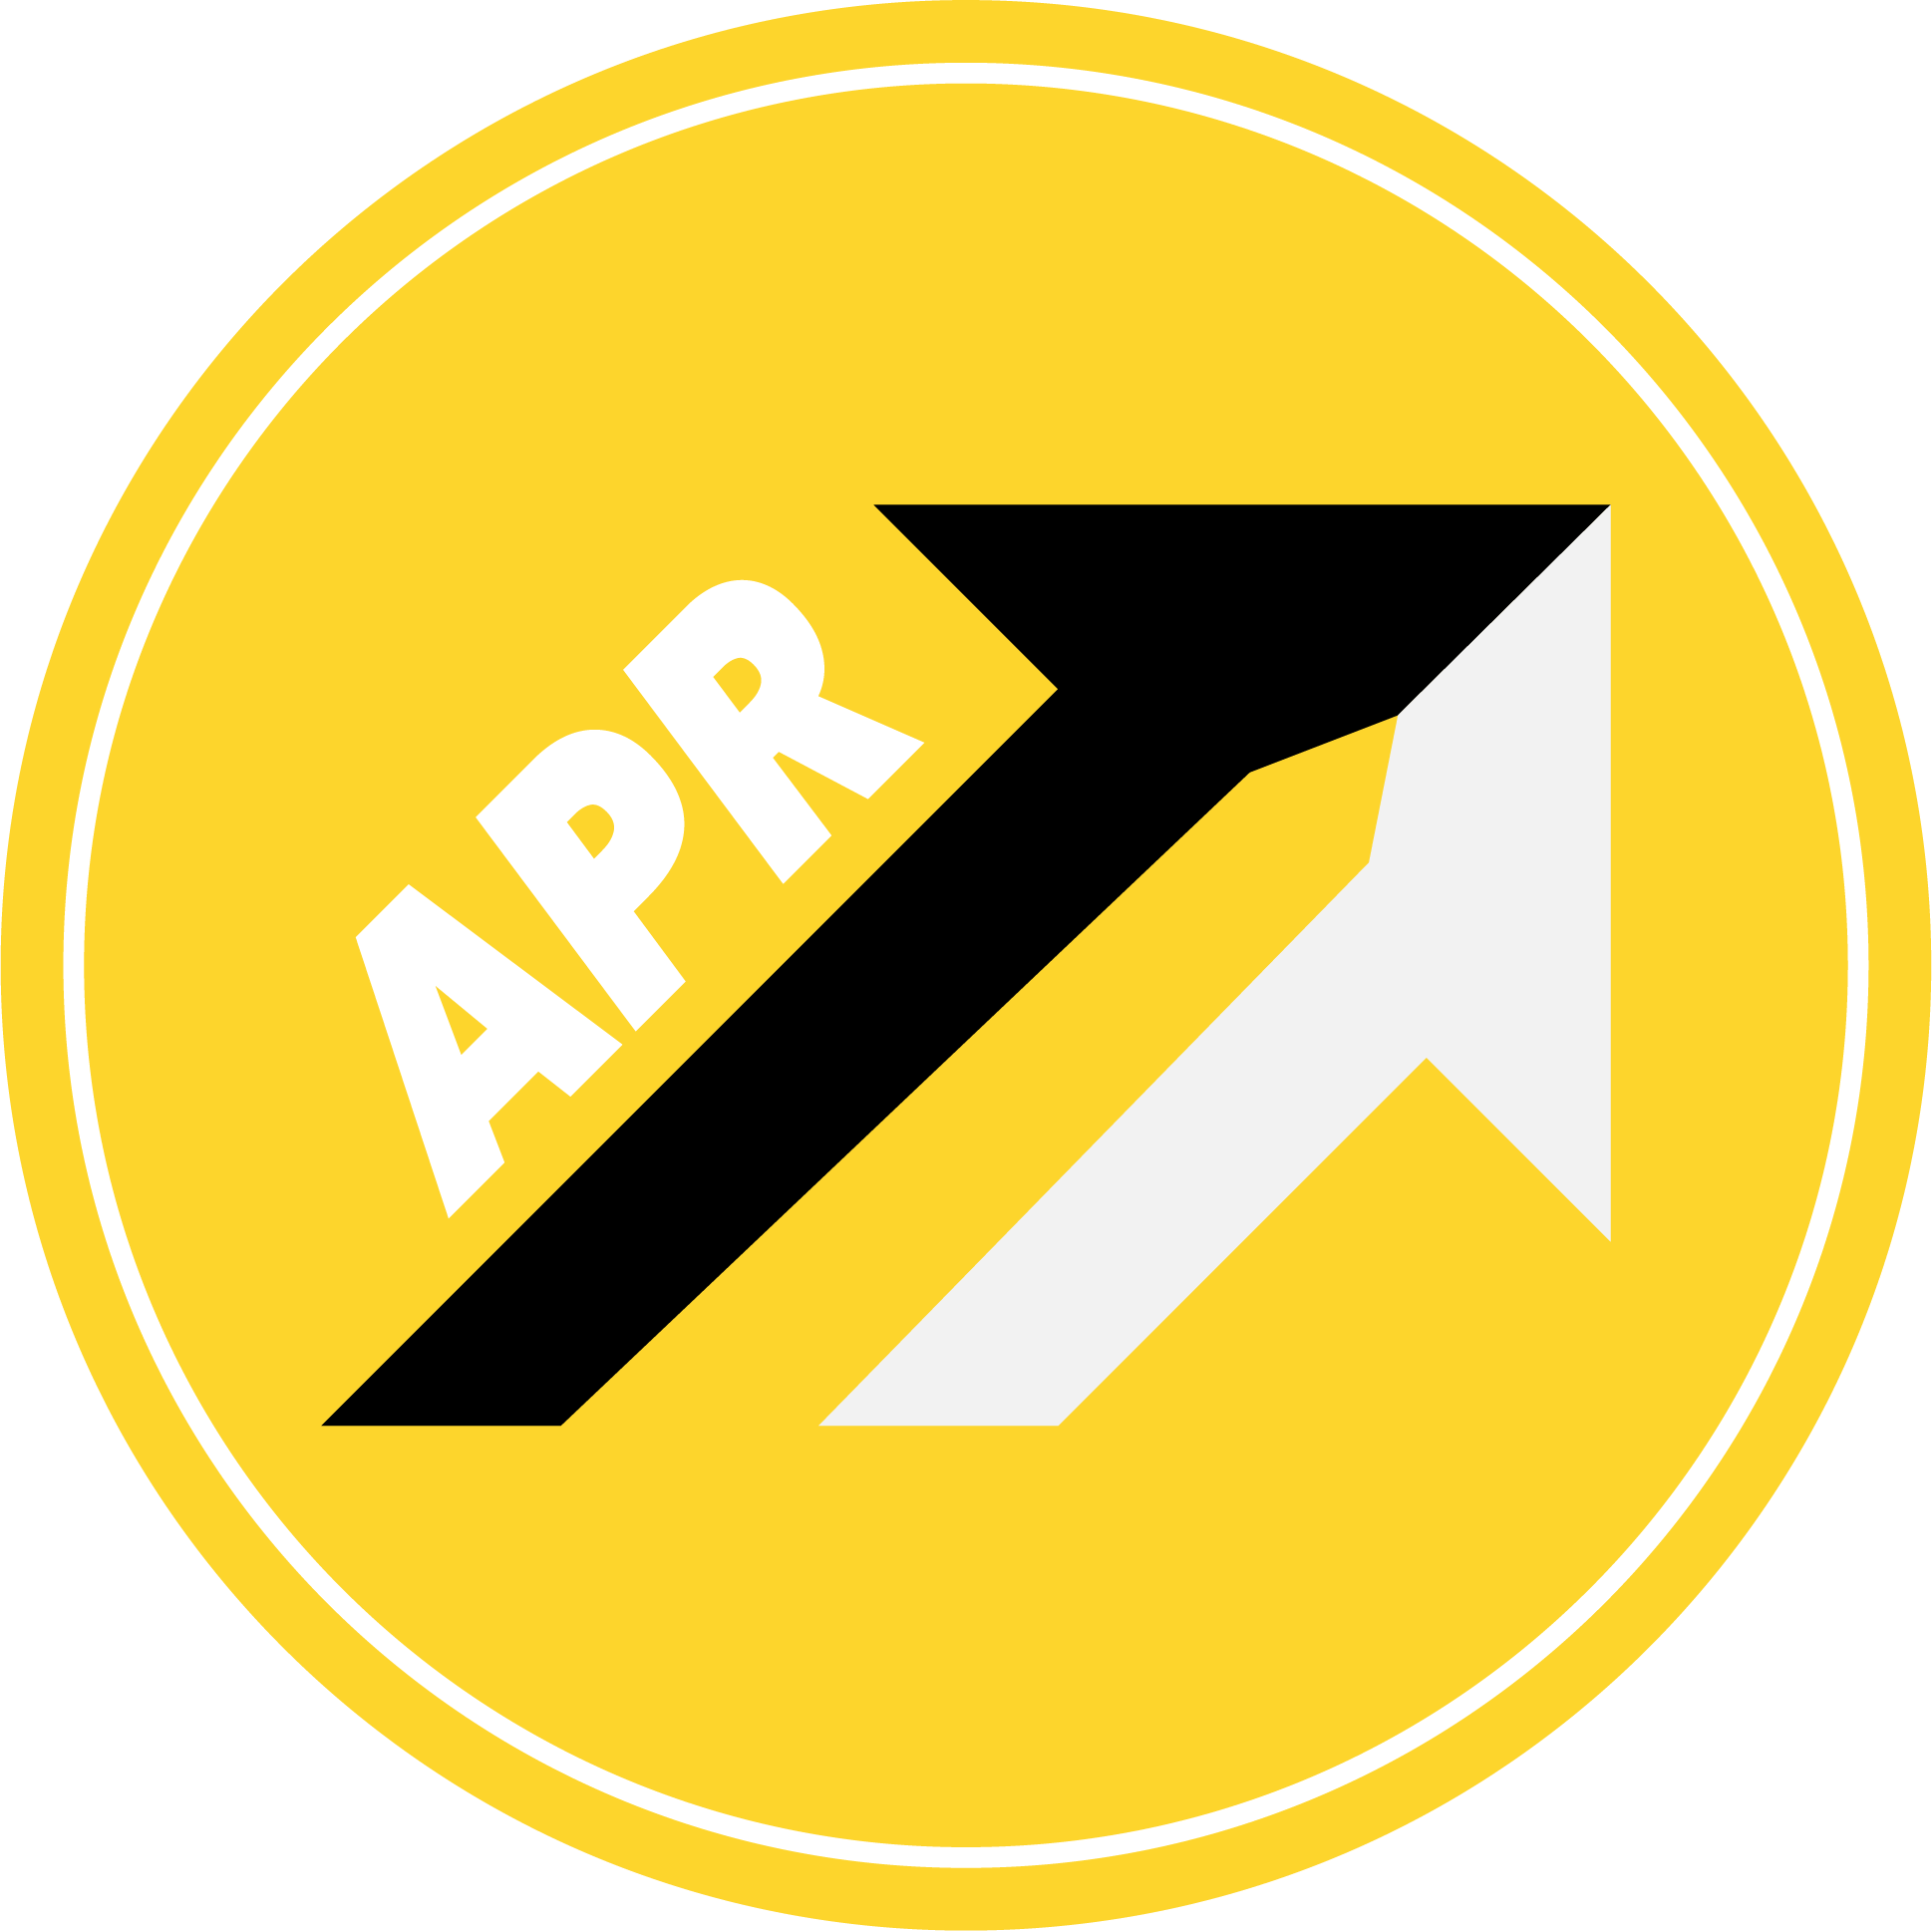 APR Coin Masternode logo